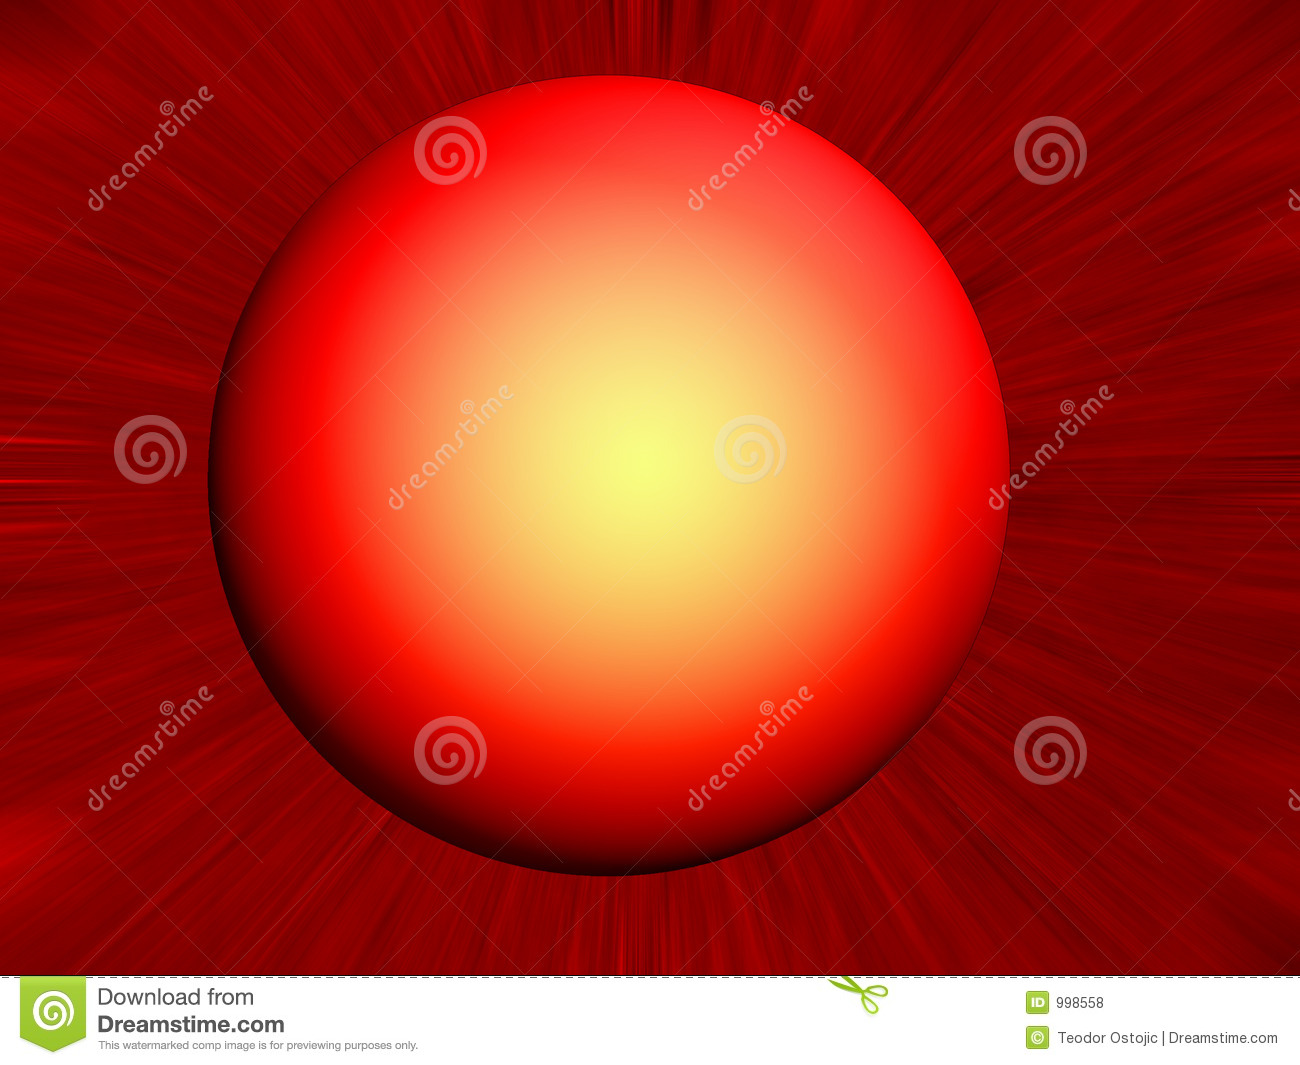 Planetred